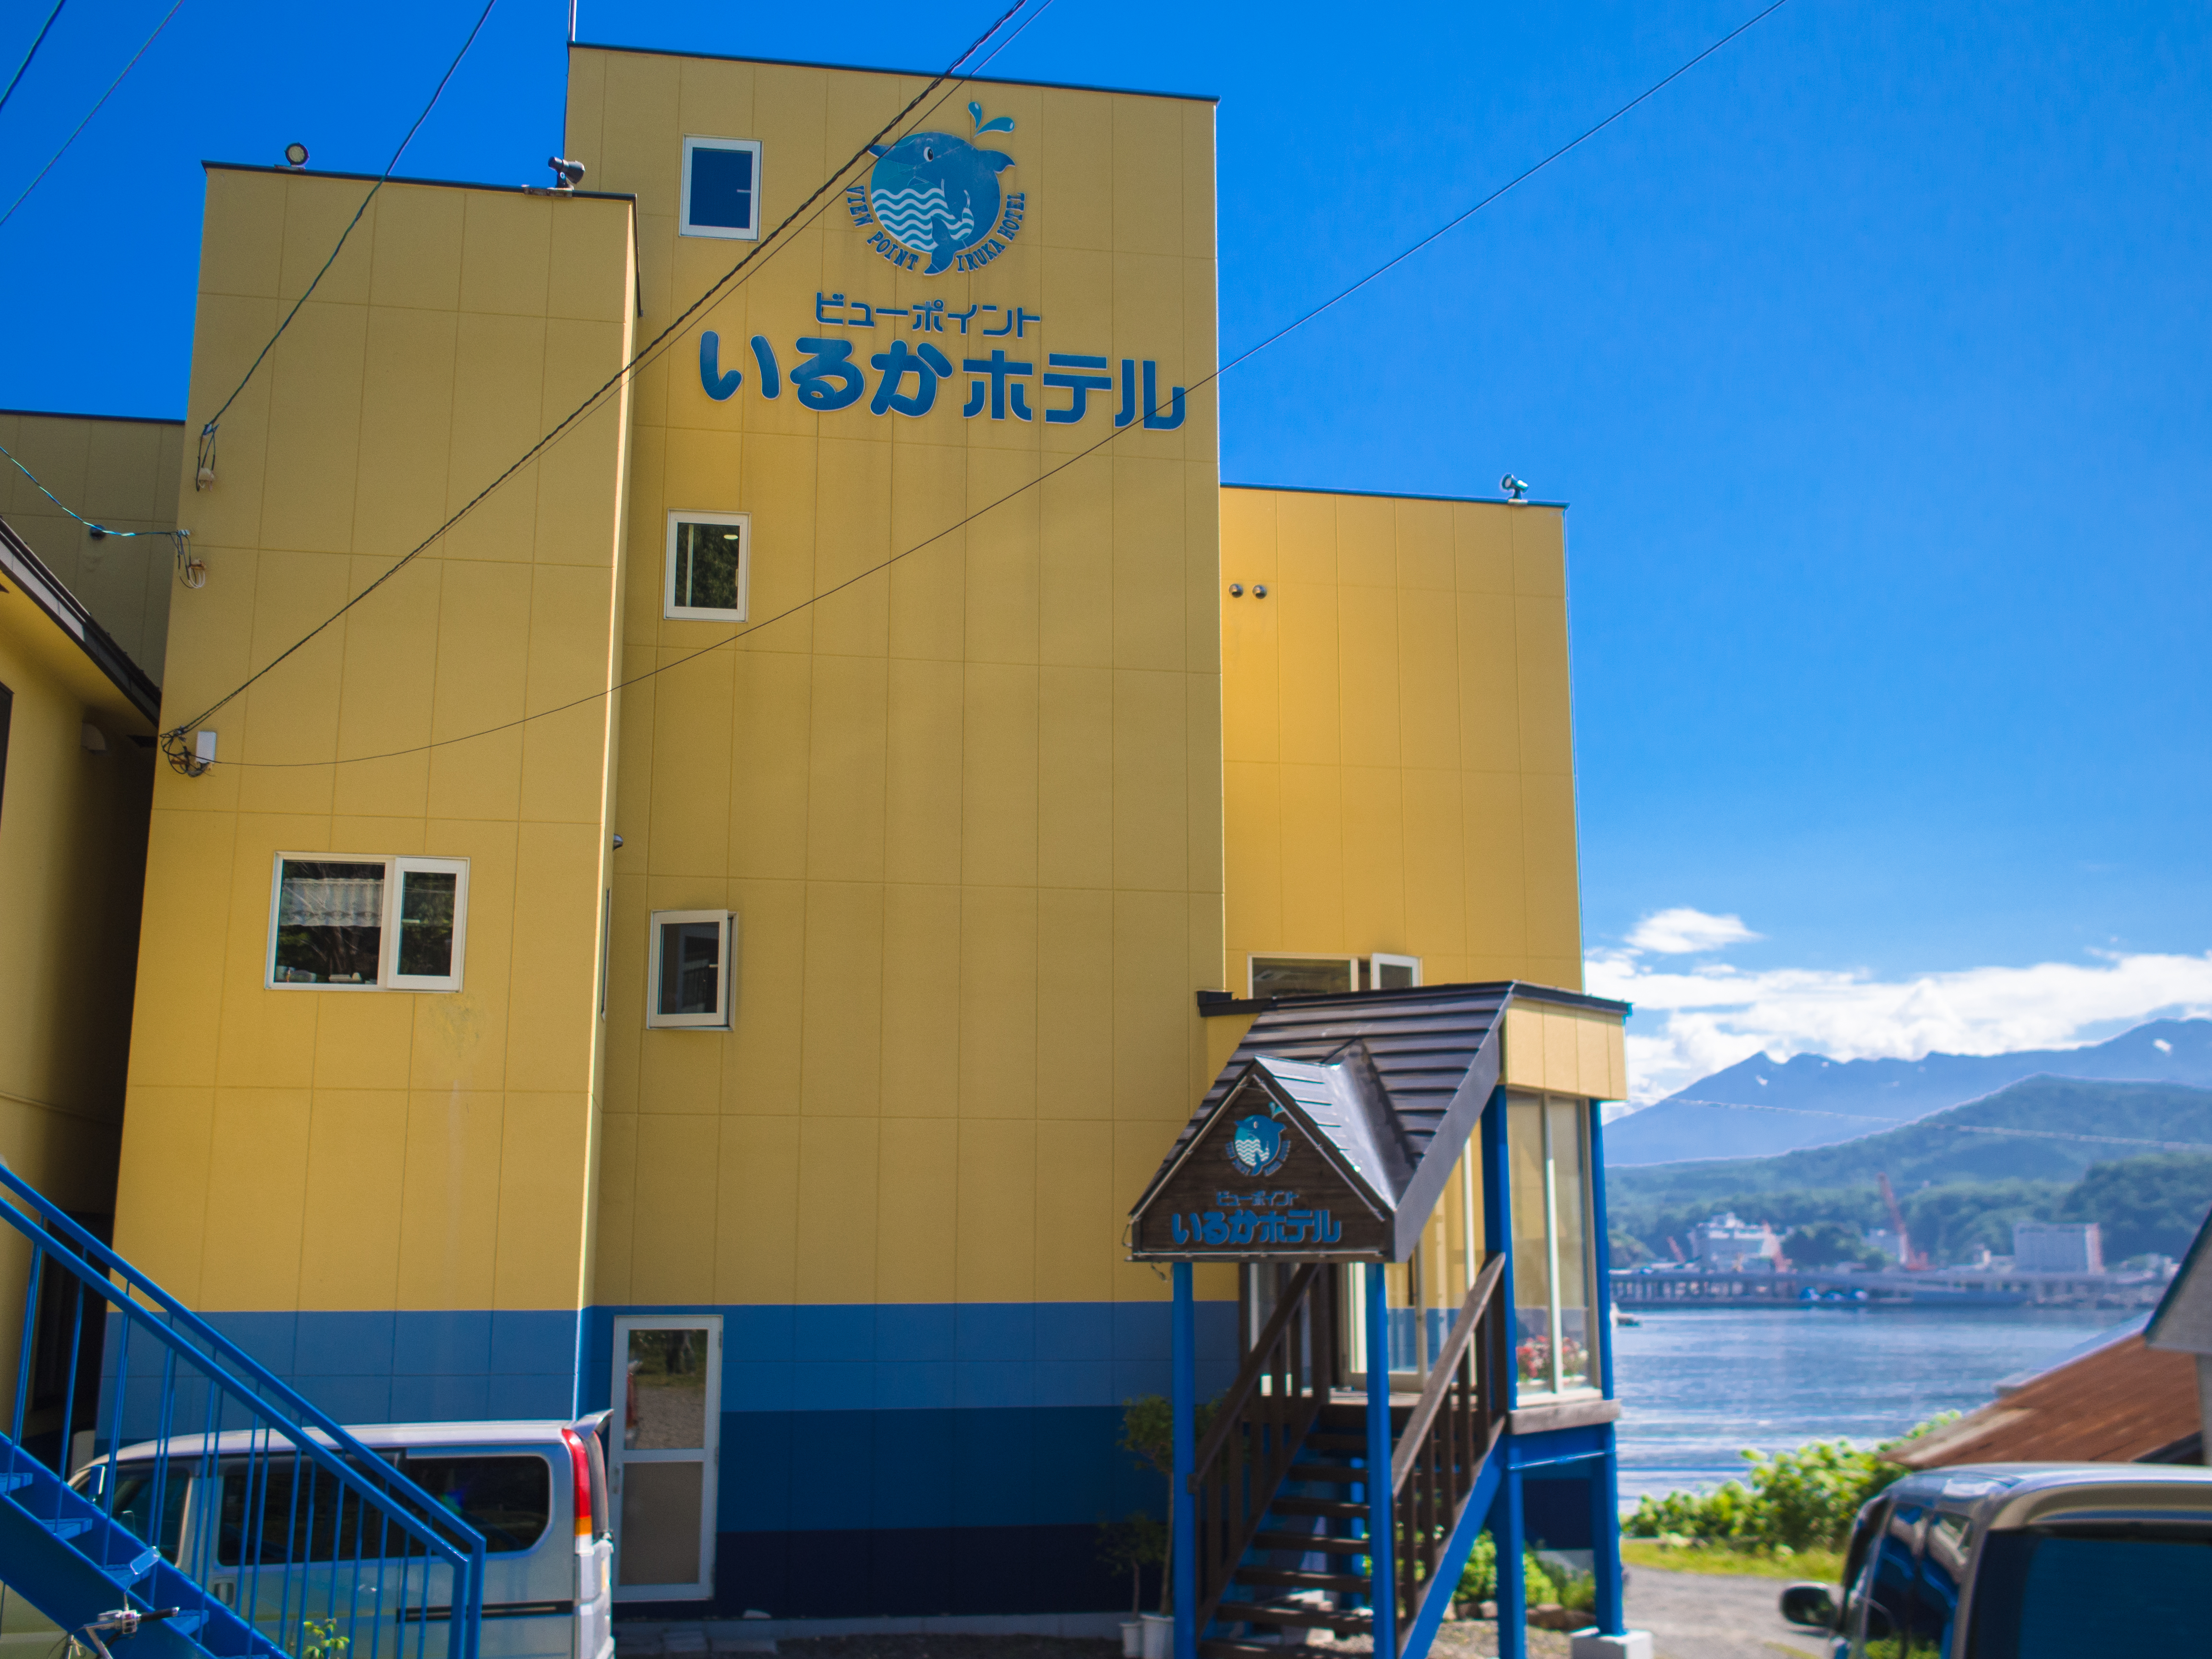 iruka hotel - our home for 2 nights